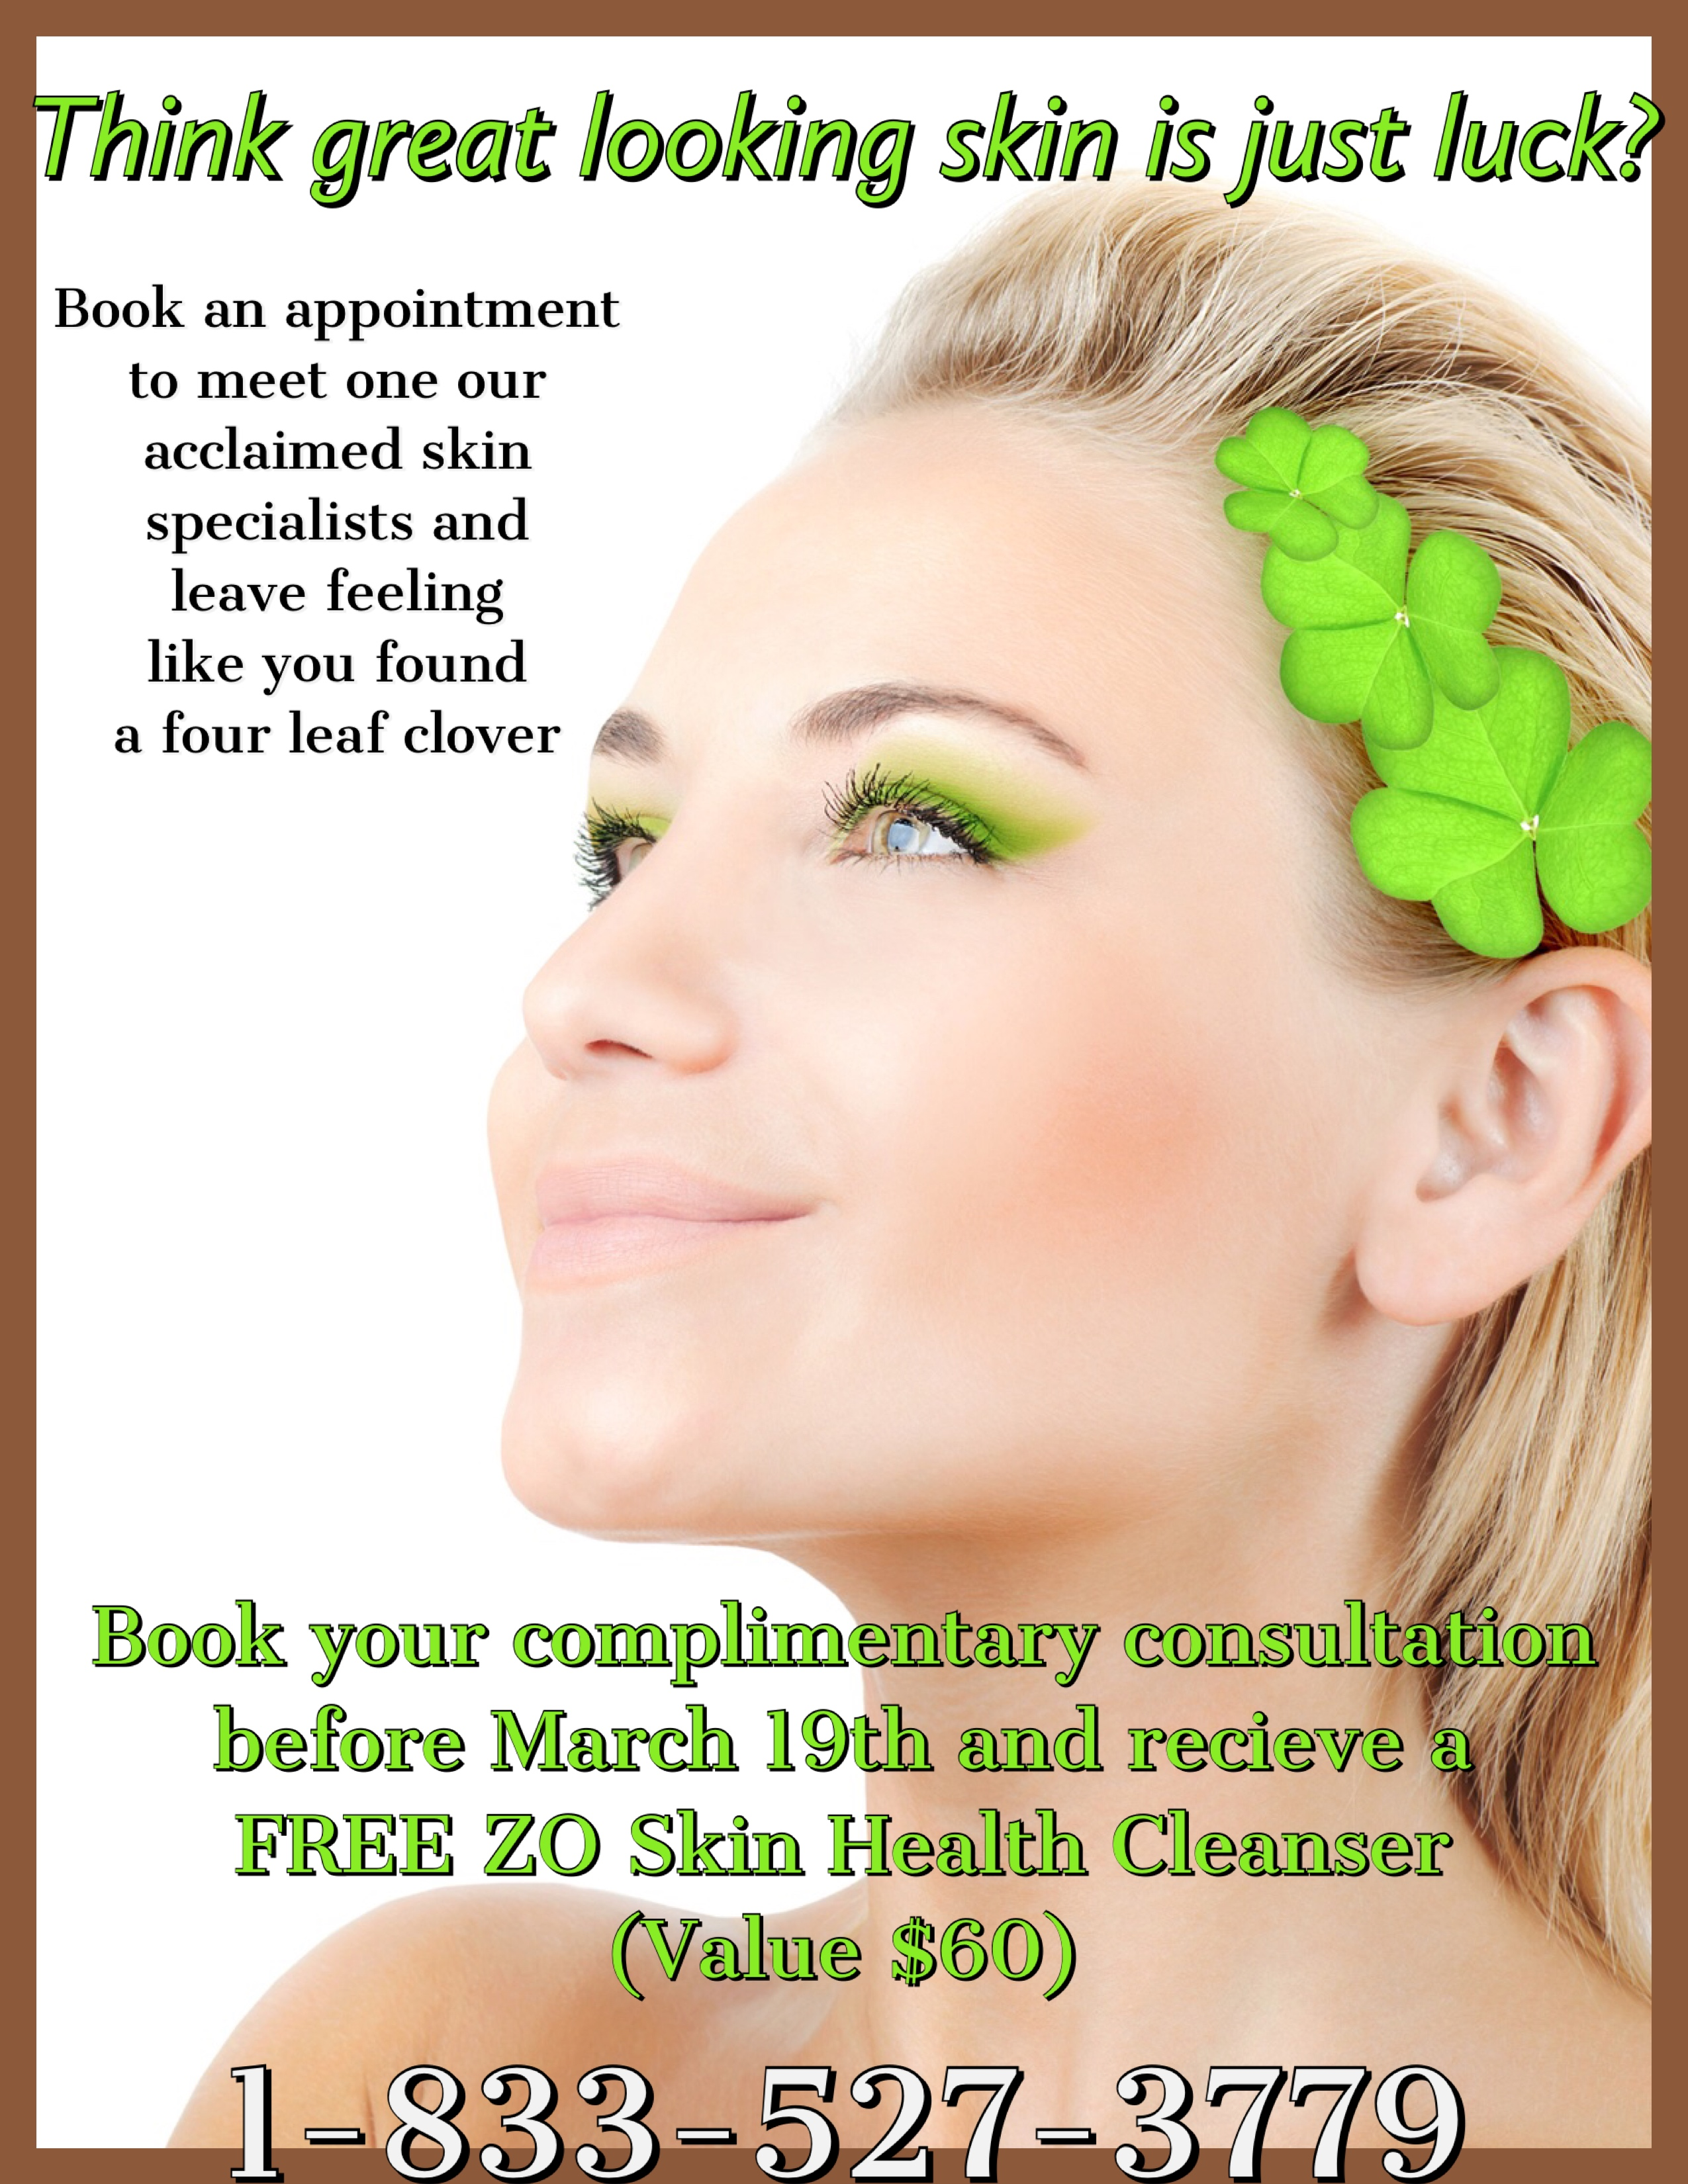 Complexion Medical Laser Clinic - March 2019 Promotion